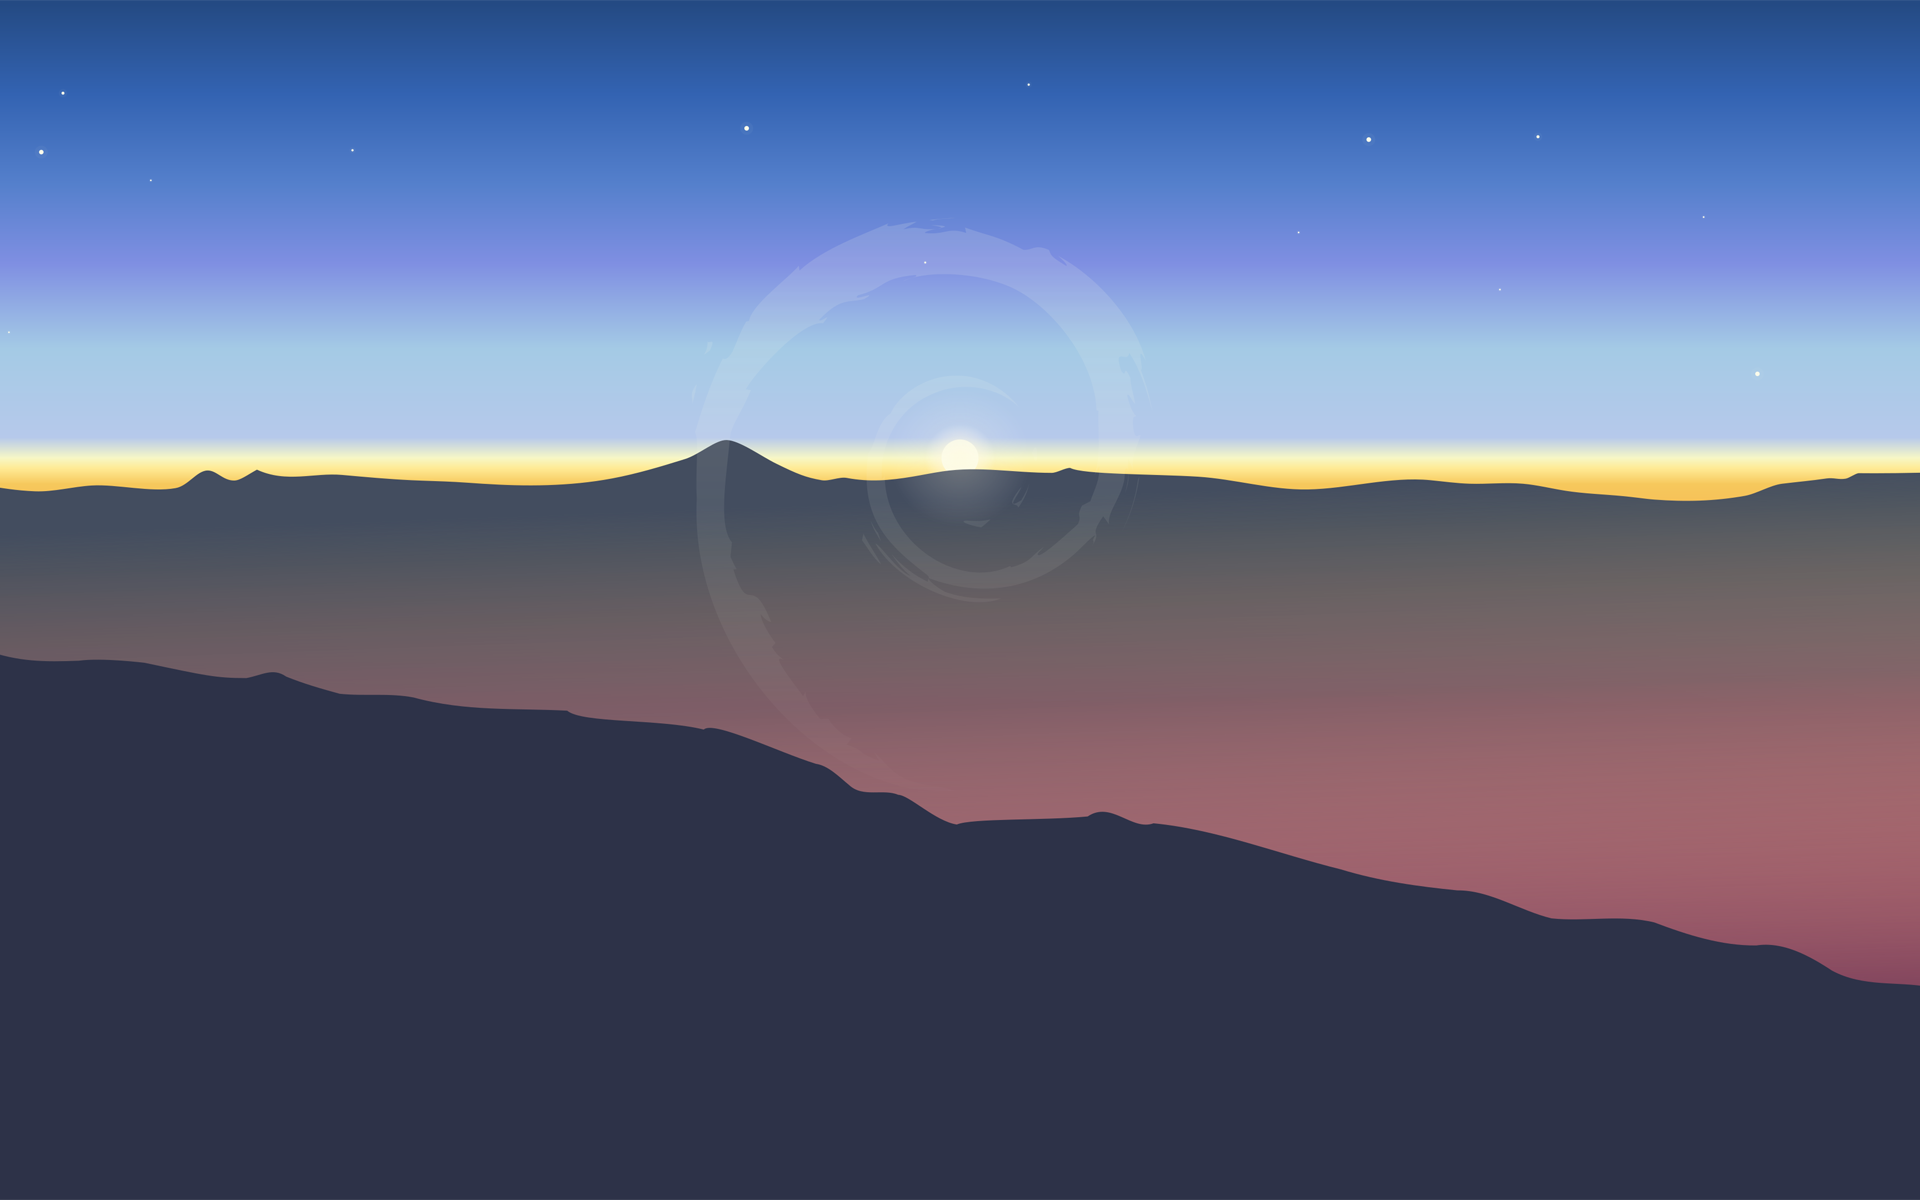 simpleOutlook-sunset-1920x1200.png